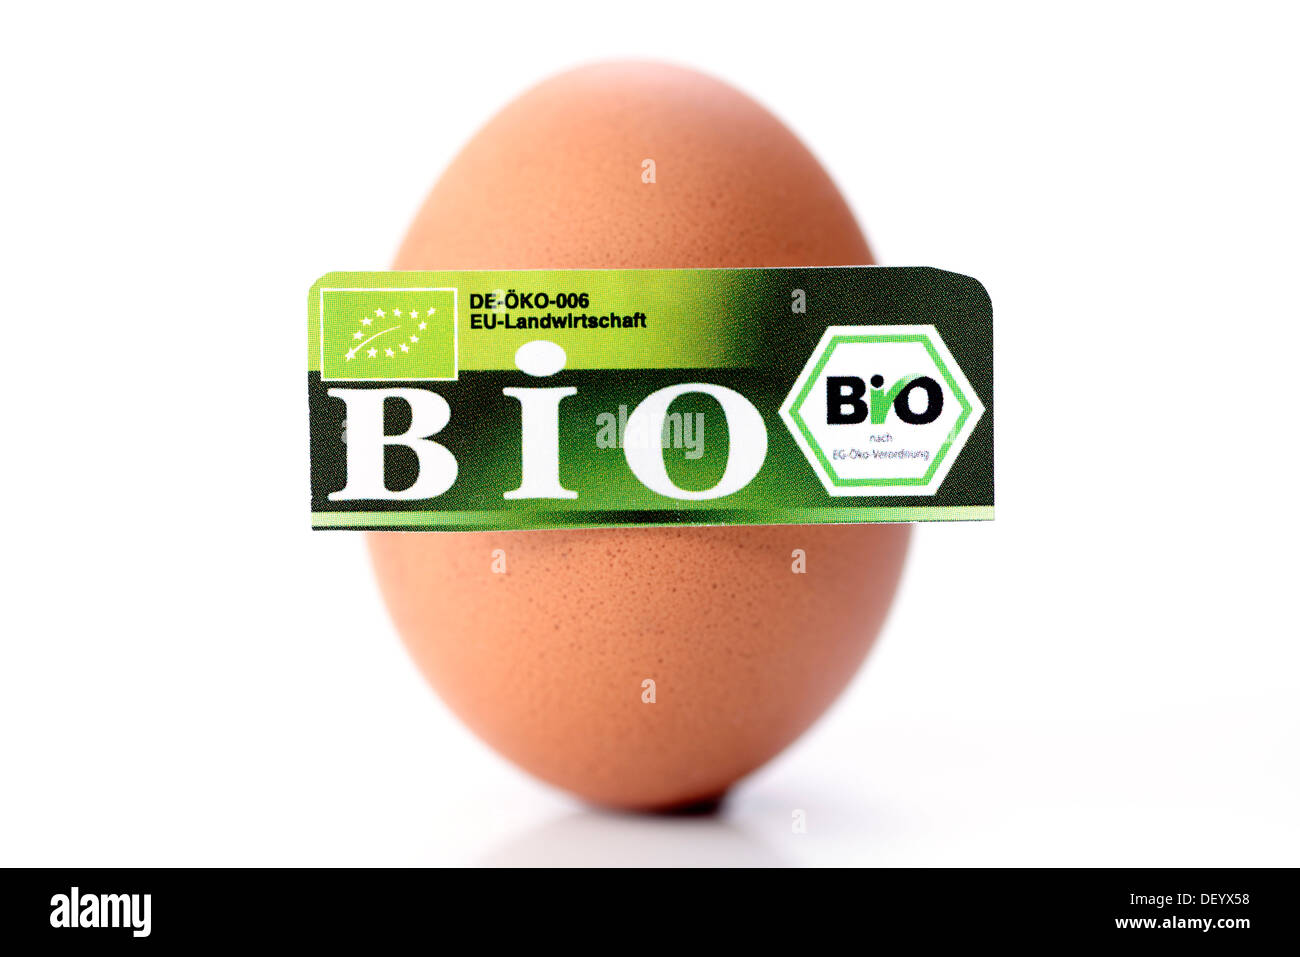 Hen's egg with organic seal, symbolic image, Germany Stock Photo